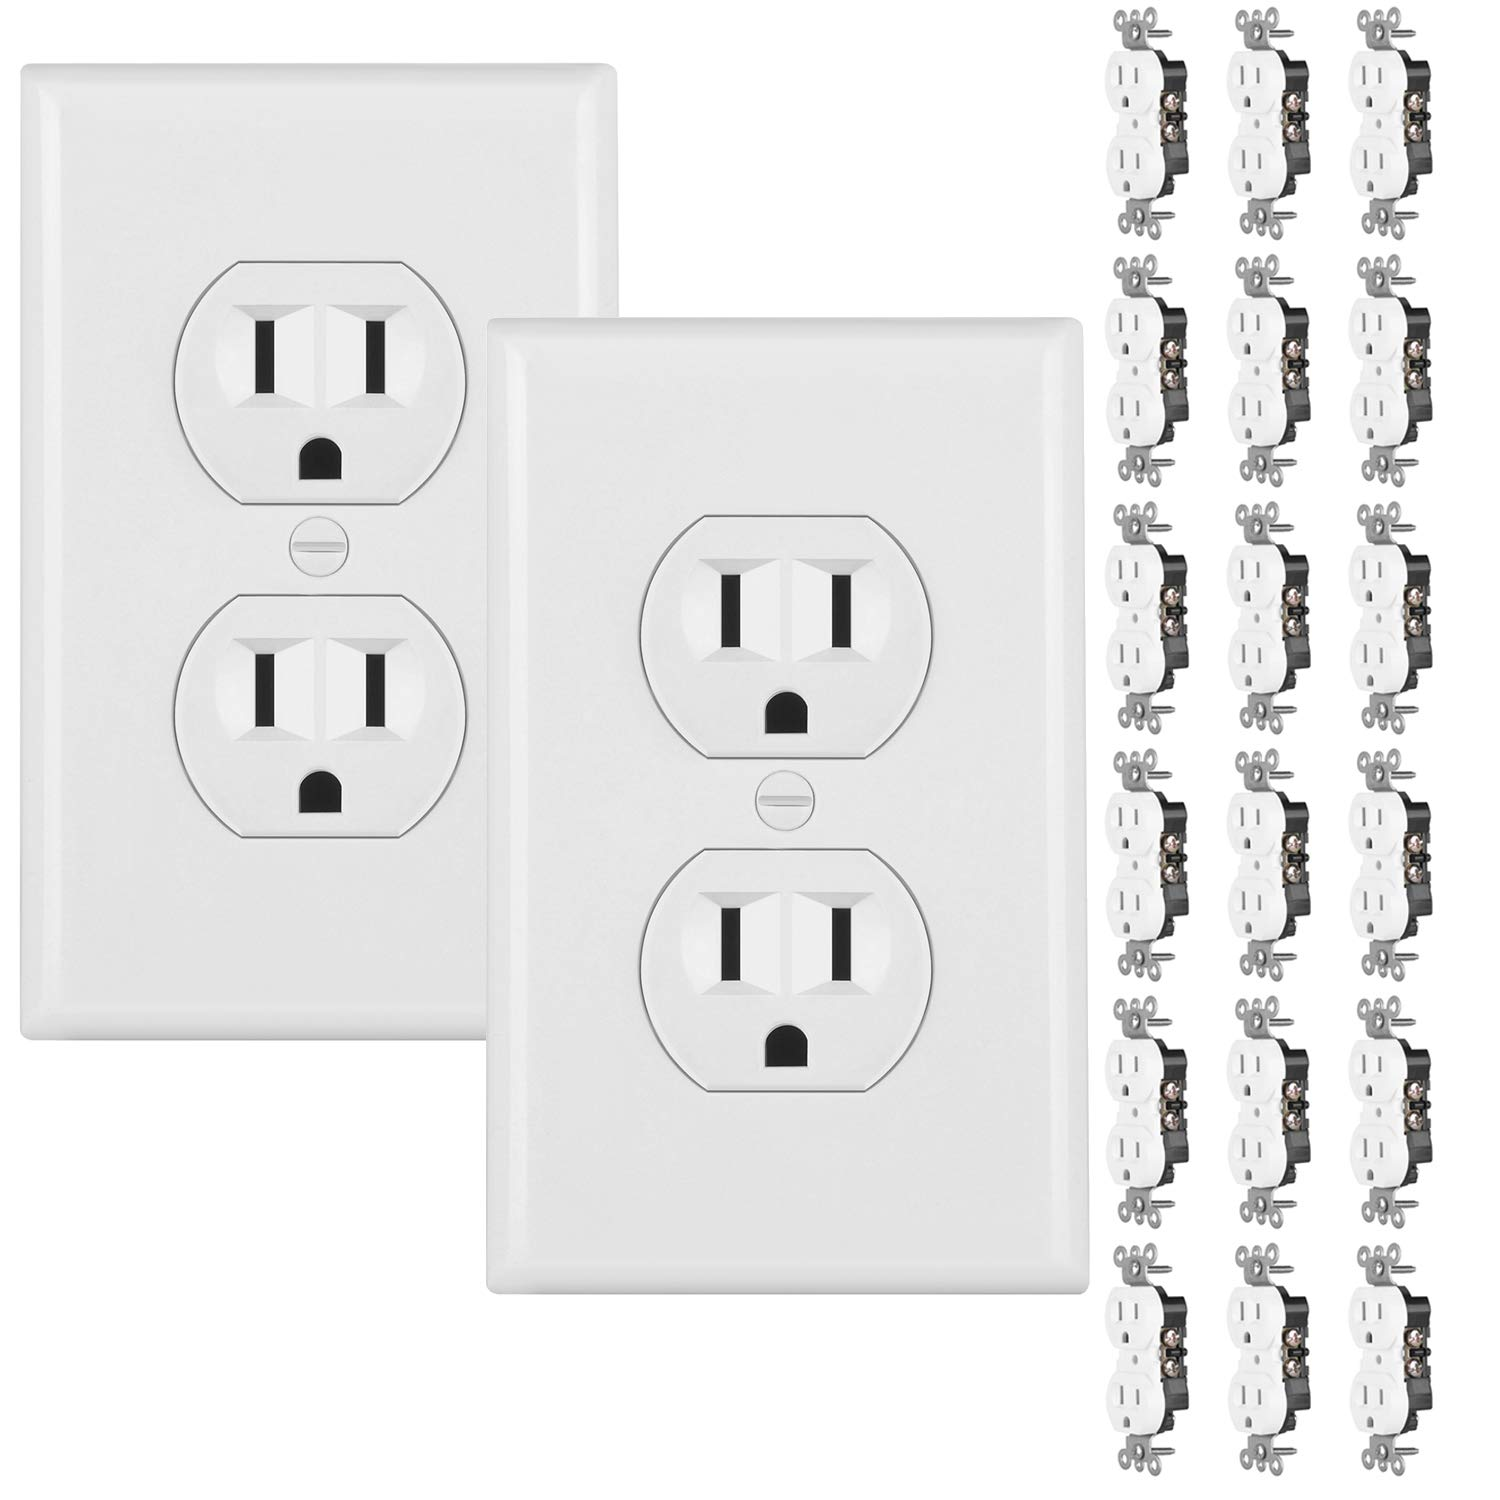 Bestten Multi-Functional Wall Mount Surge Protector, 6 Electrical Outlet and 2 USB Charging Ports (2.4A/Port, 3.1A Total), Safety Cover, ETL Certified FBA_USW-2U6A-0BS